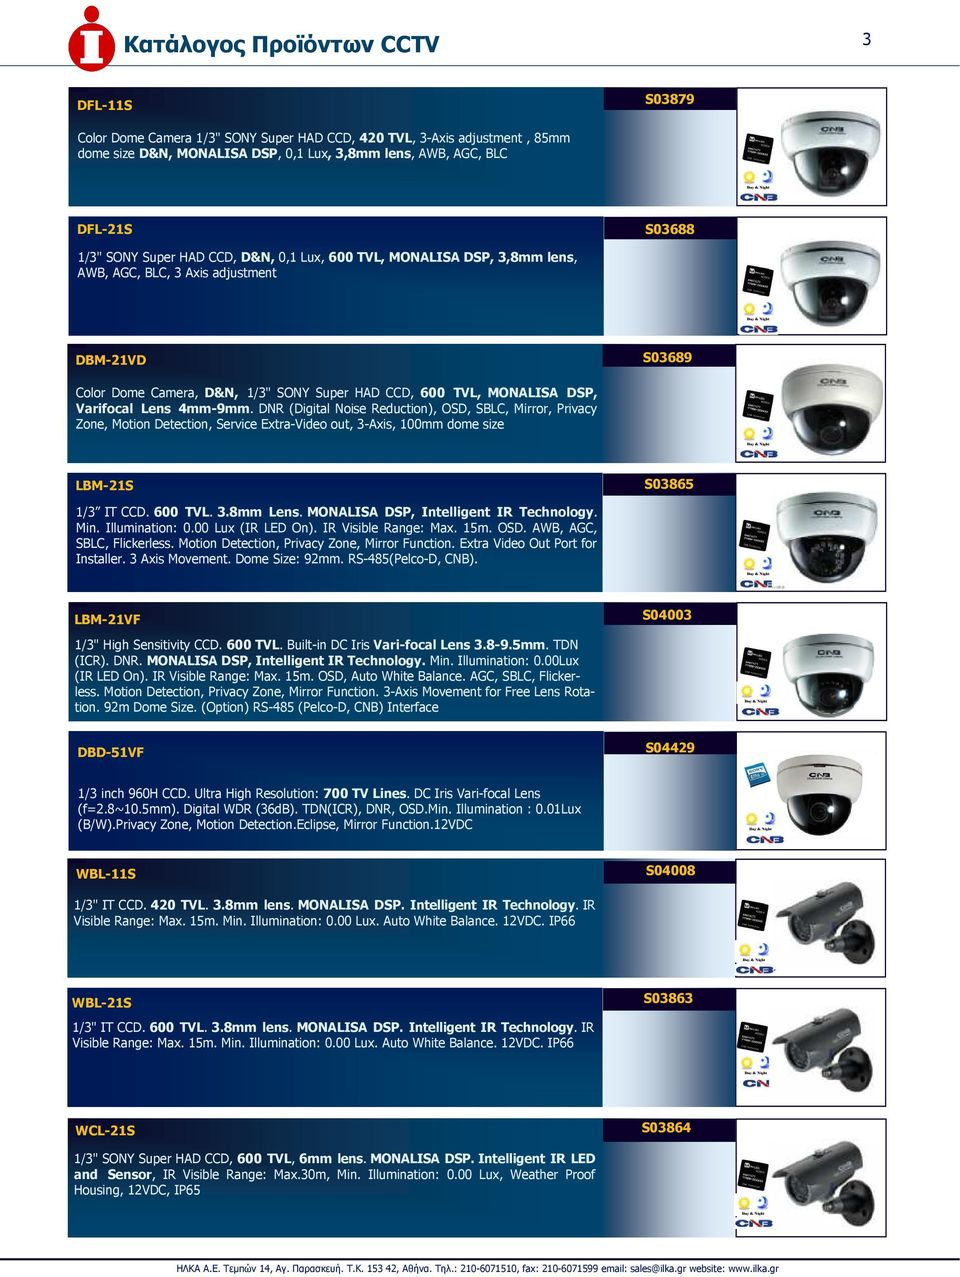 Varifocal Lens 4mm-9mm. DNR (Digital Noise Reduction), OSD, SBLC, Mirror, Privacy Zone, Motion Detection, Service Extra-Video out, 3-Axis, 100mm dome size LBM-21S S03865 1/3 IT CCD. 600 TVL. 3.8mm Lens.